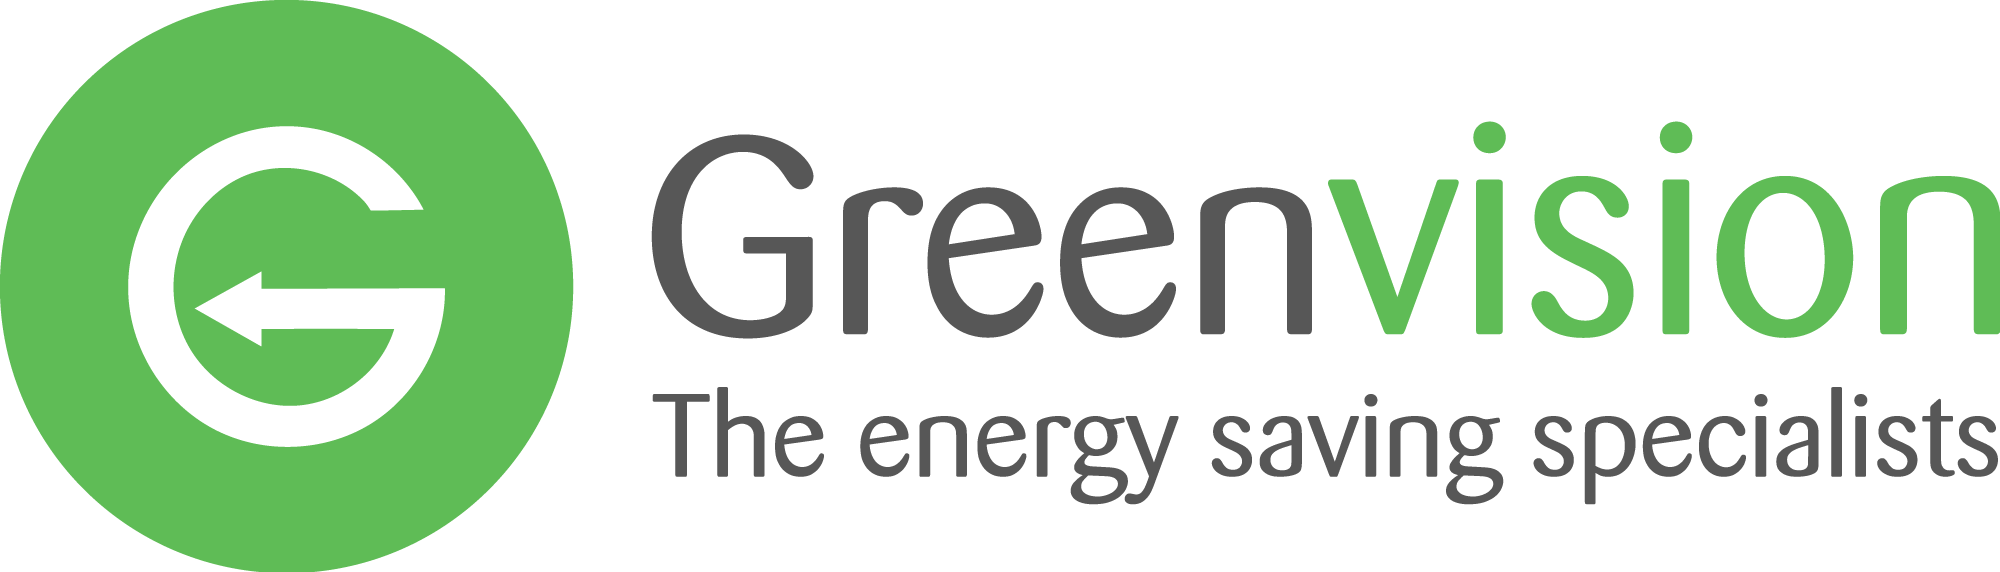 Greenvision Energy